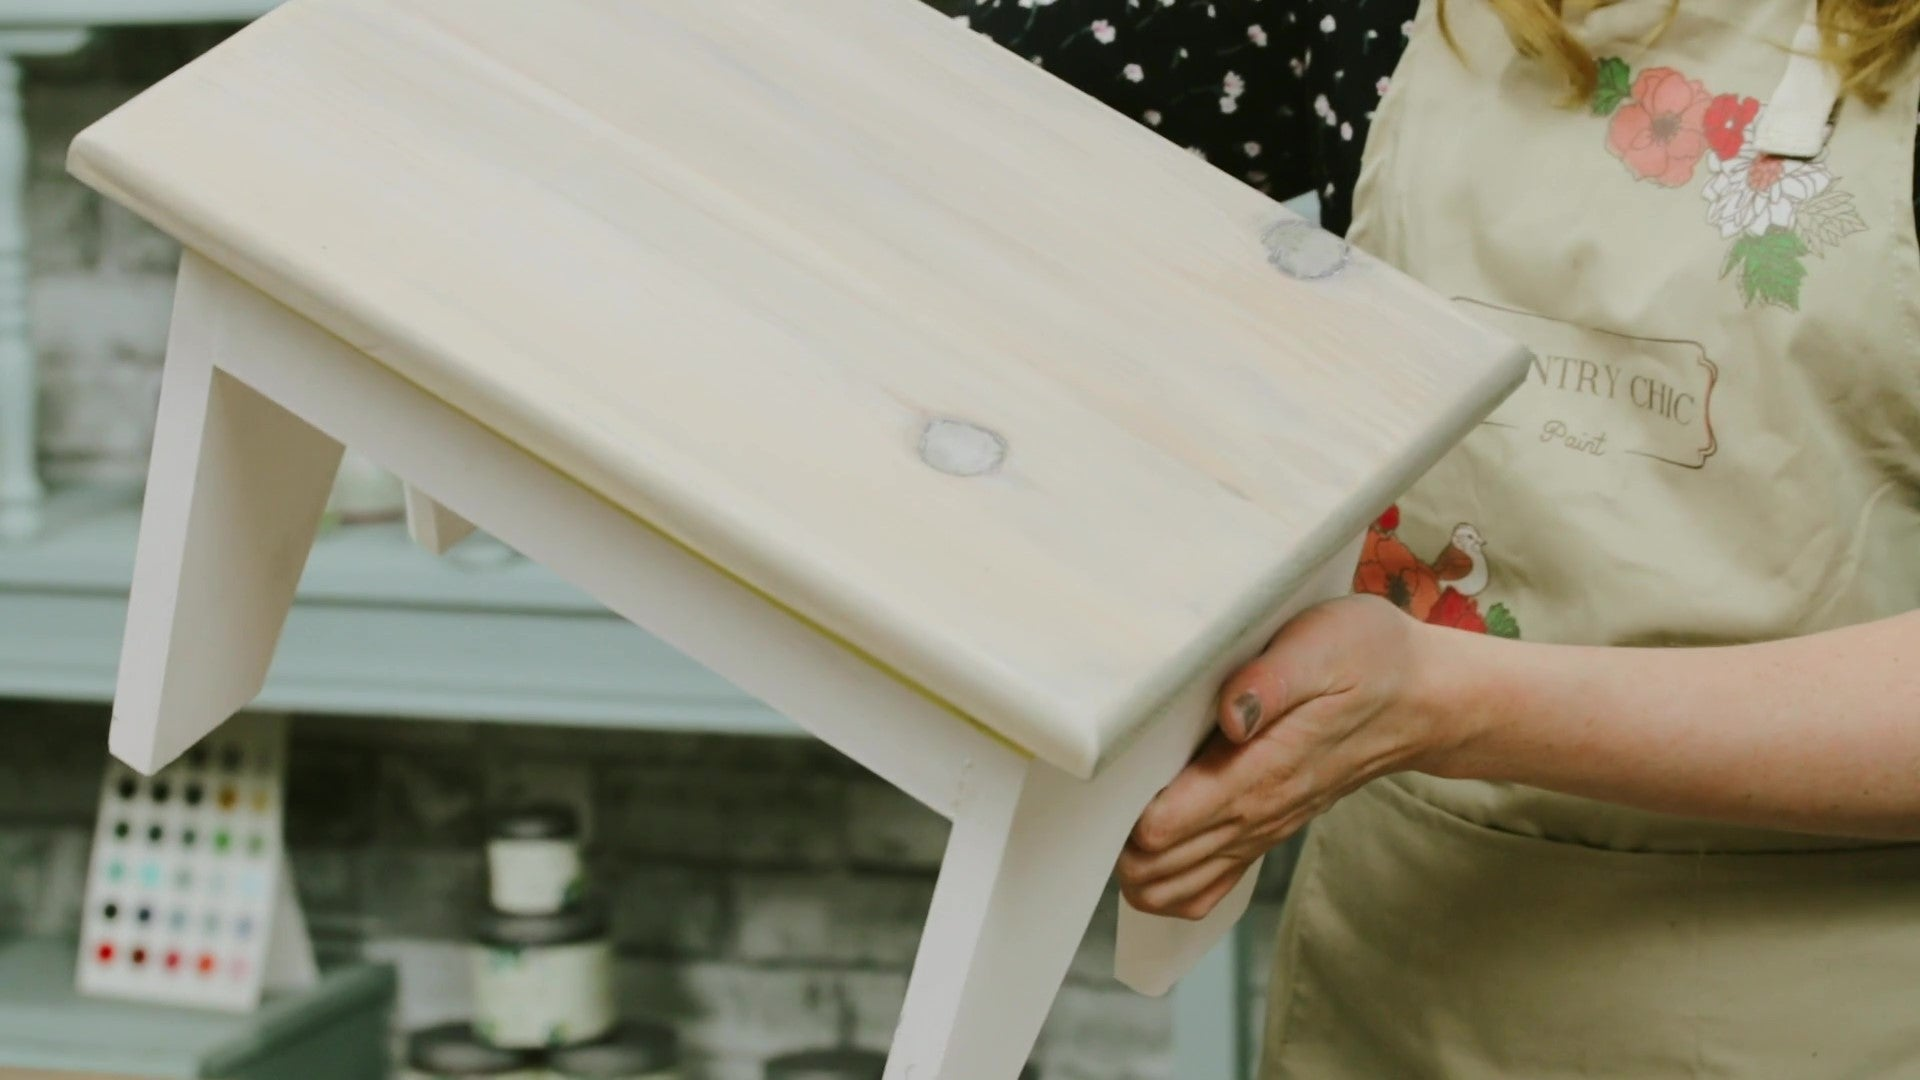 how to use Country Chic Paint furniture glaze as stain on DIY furniture painting projects - step by step tutorial